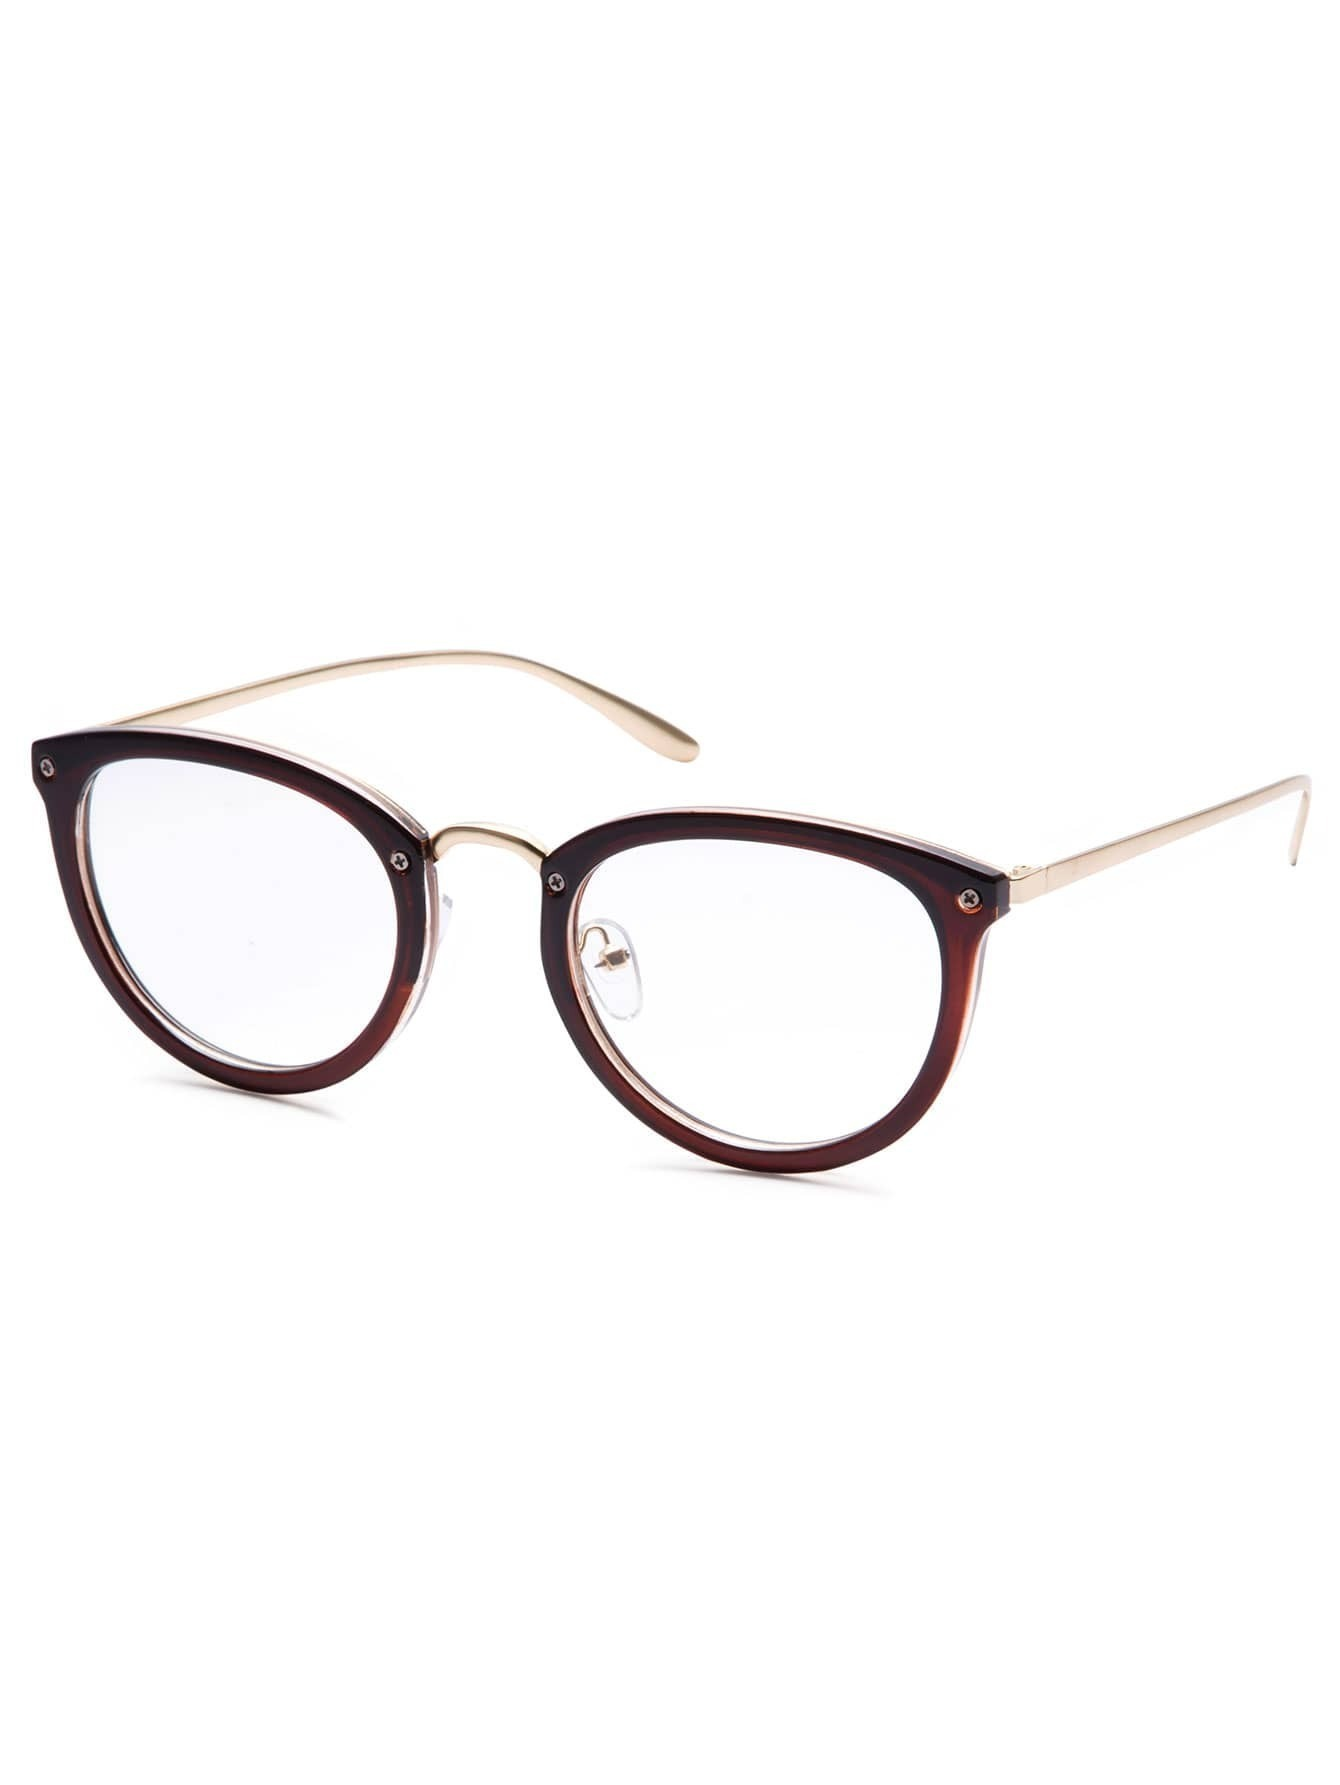 Glasses Frames With Removable Arms : Brown Frame Gold Arm Glasses